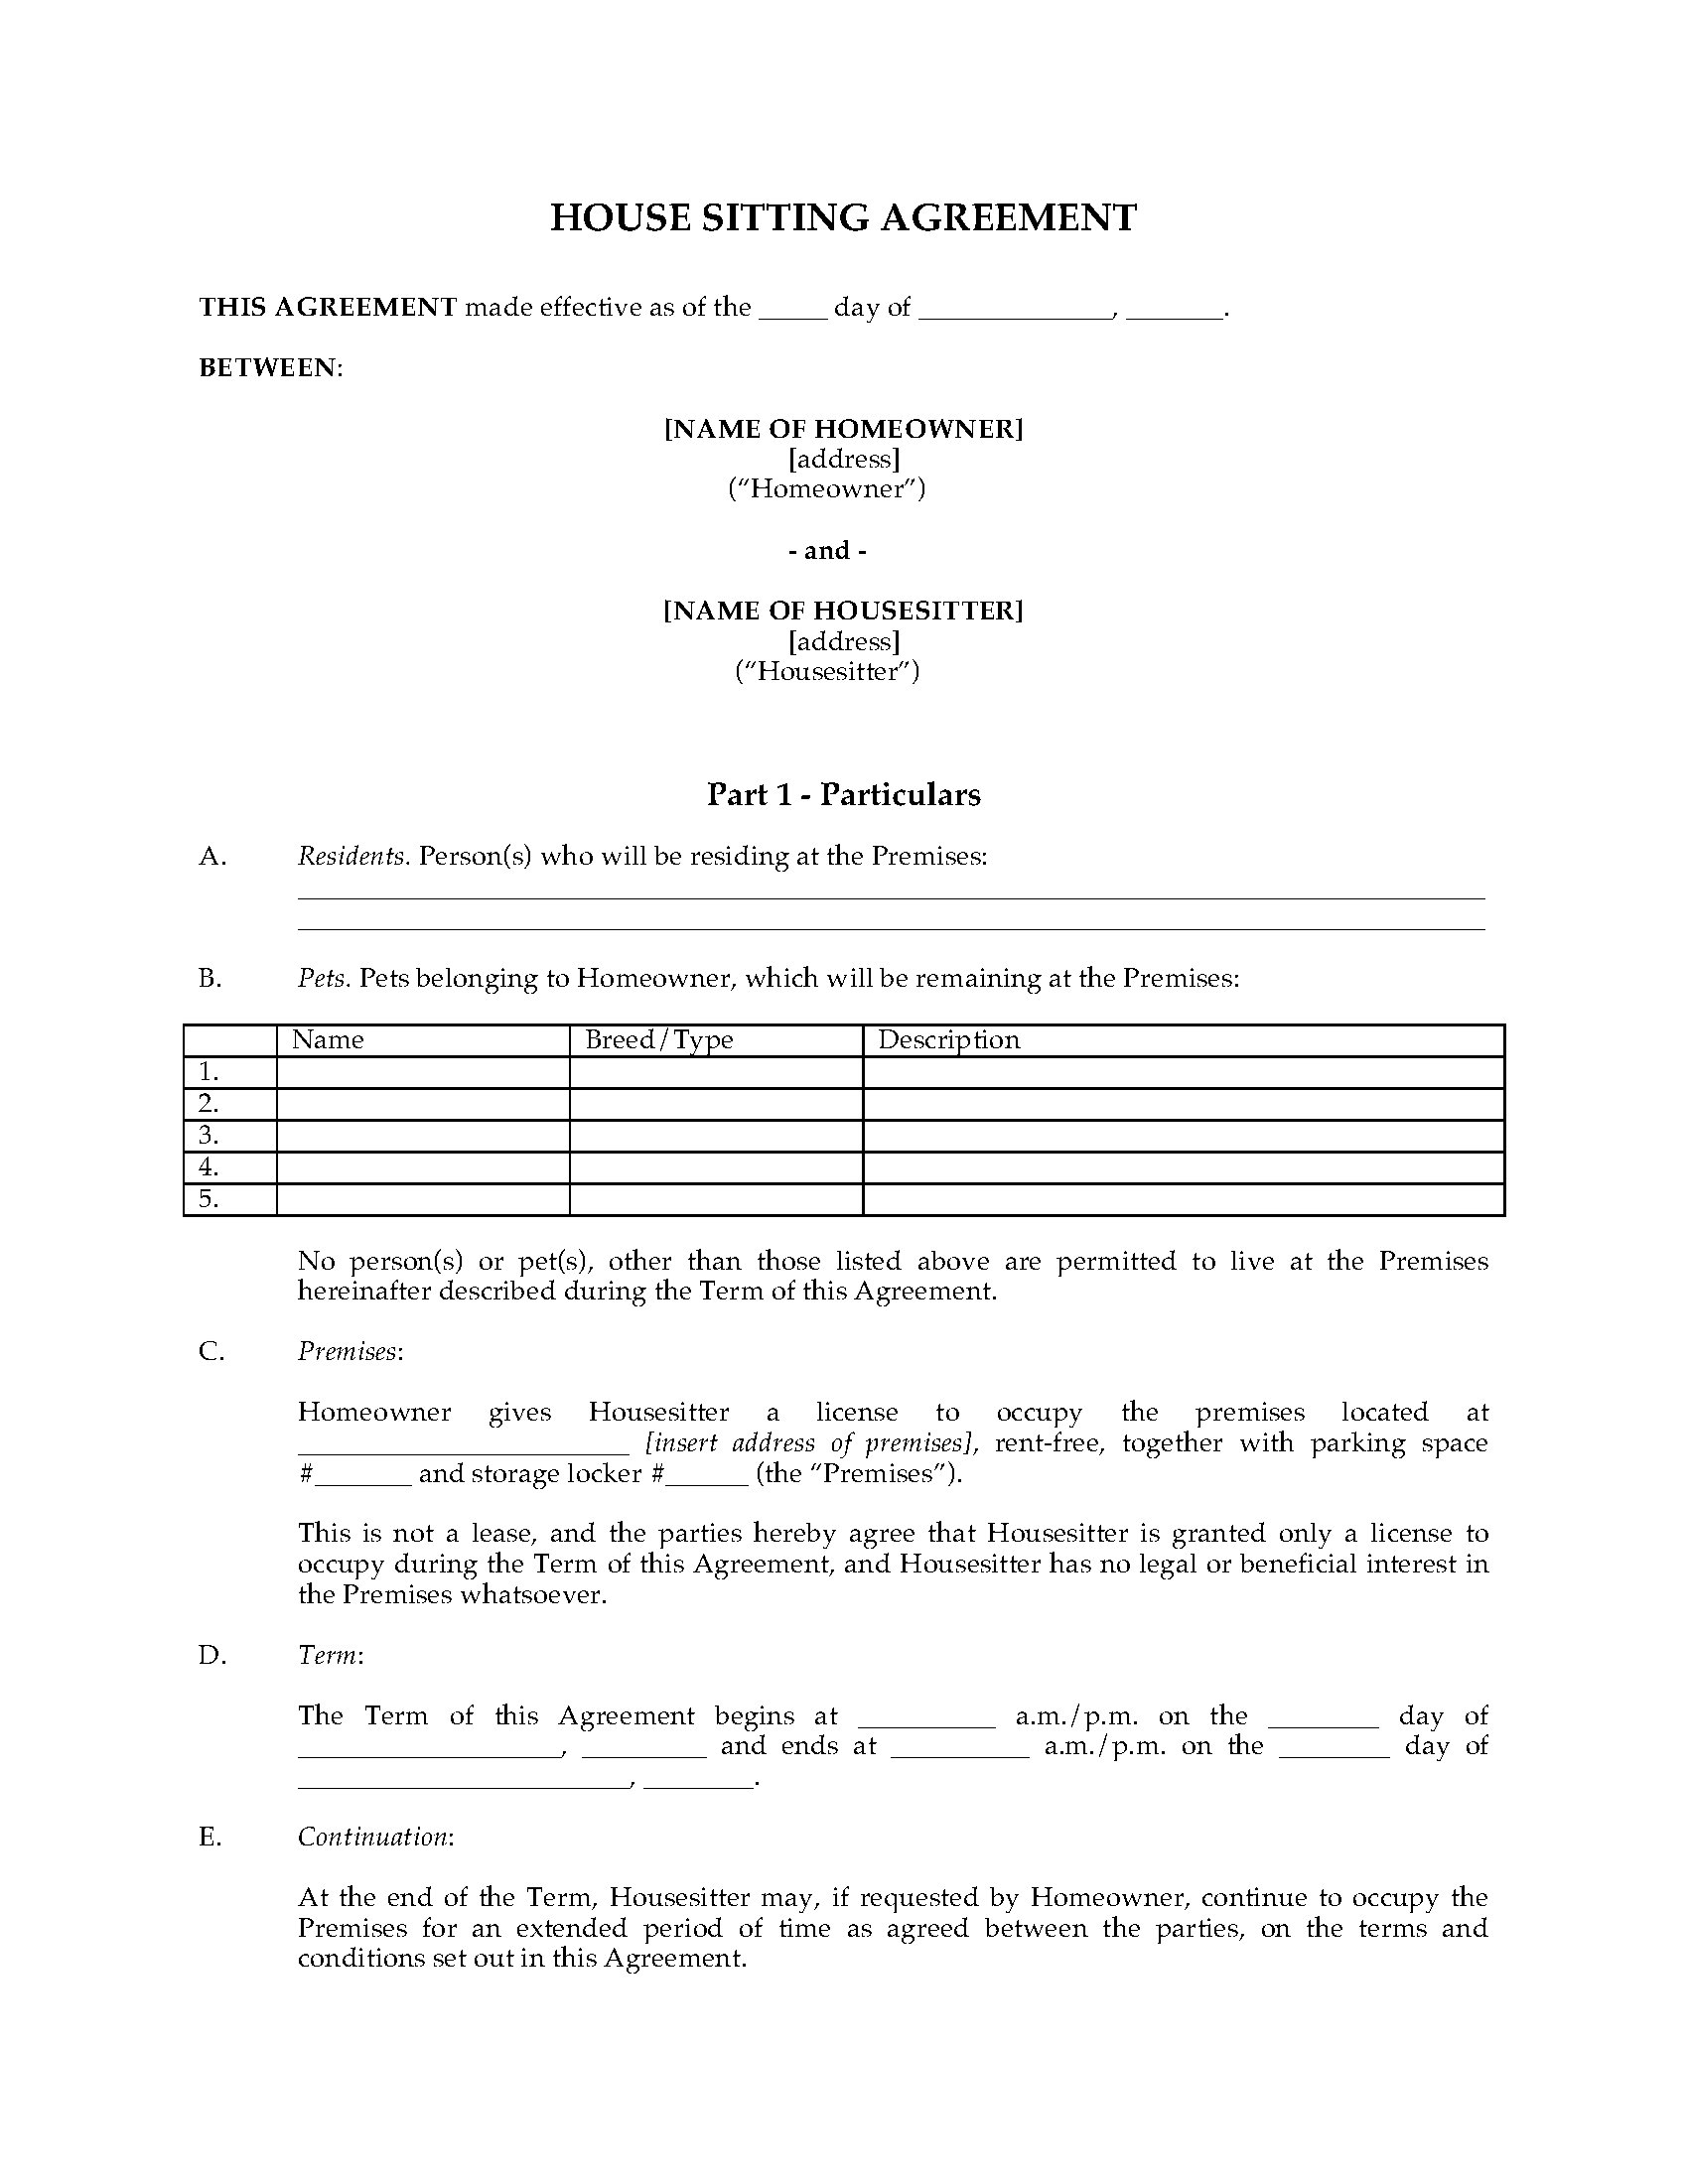 house sitting agreement template legal forms and business